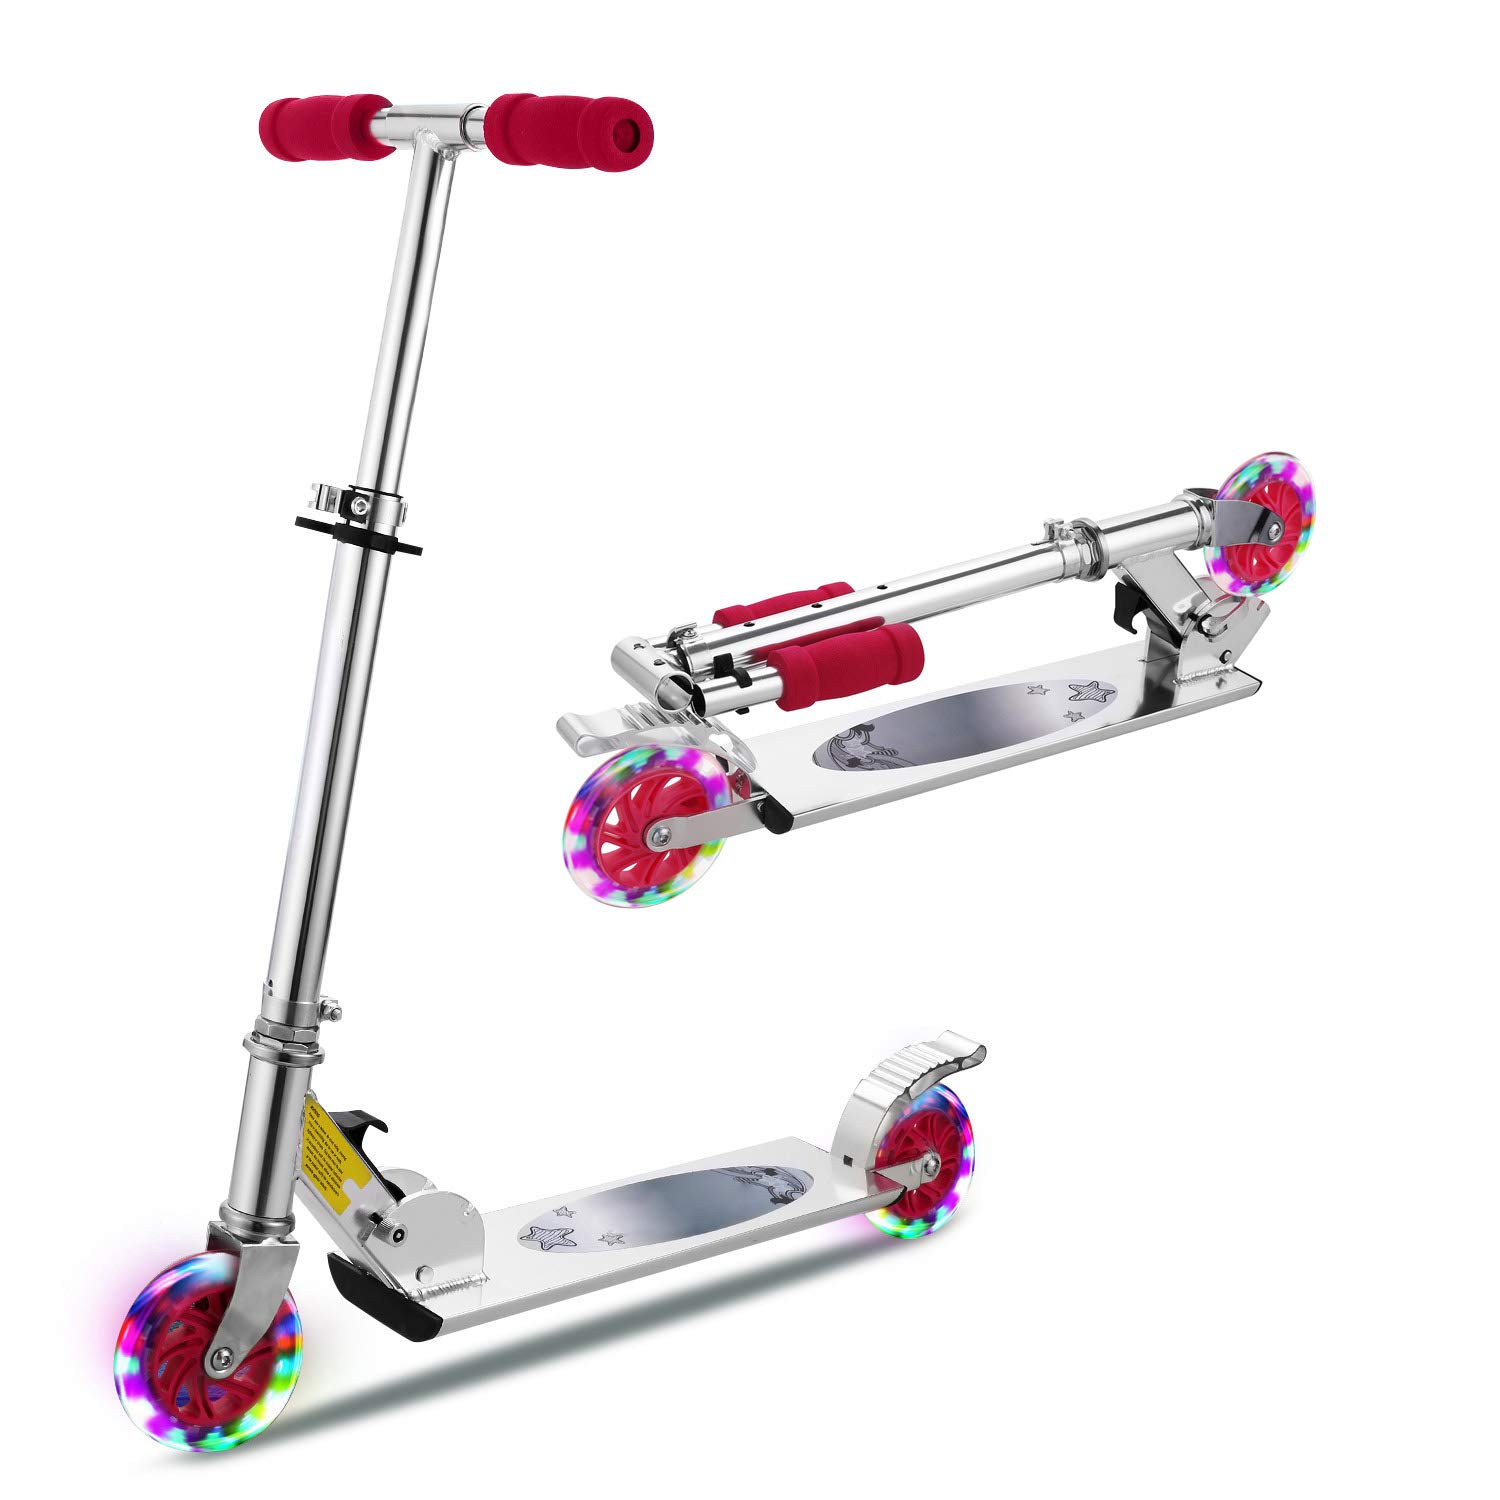 Top 10 Best Kick Scooter For Commuting - Buyer's Guide 4